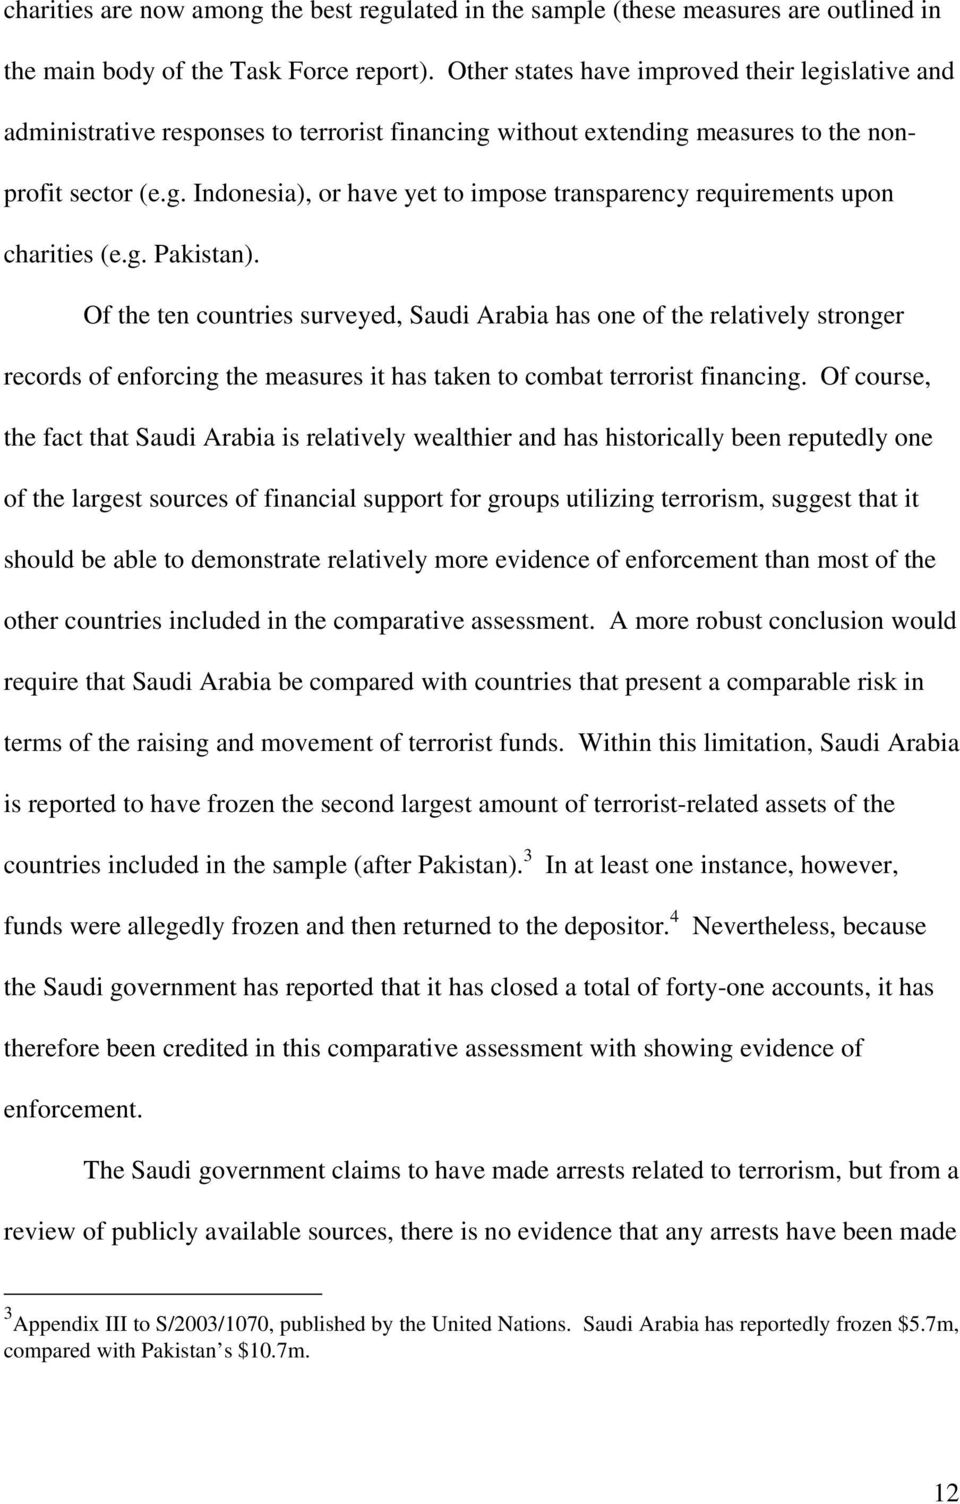 g. Pakistan). Of the ten countries surveyed, Saudi Arabia has one of the relatively stronger records of enforcing the measures it has taken to combat terrorist financing.